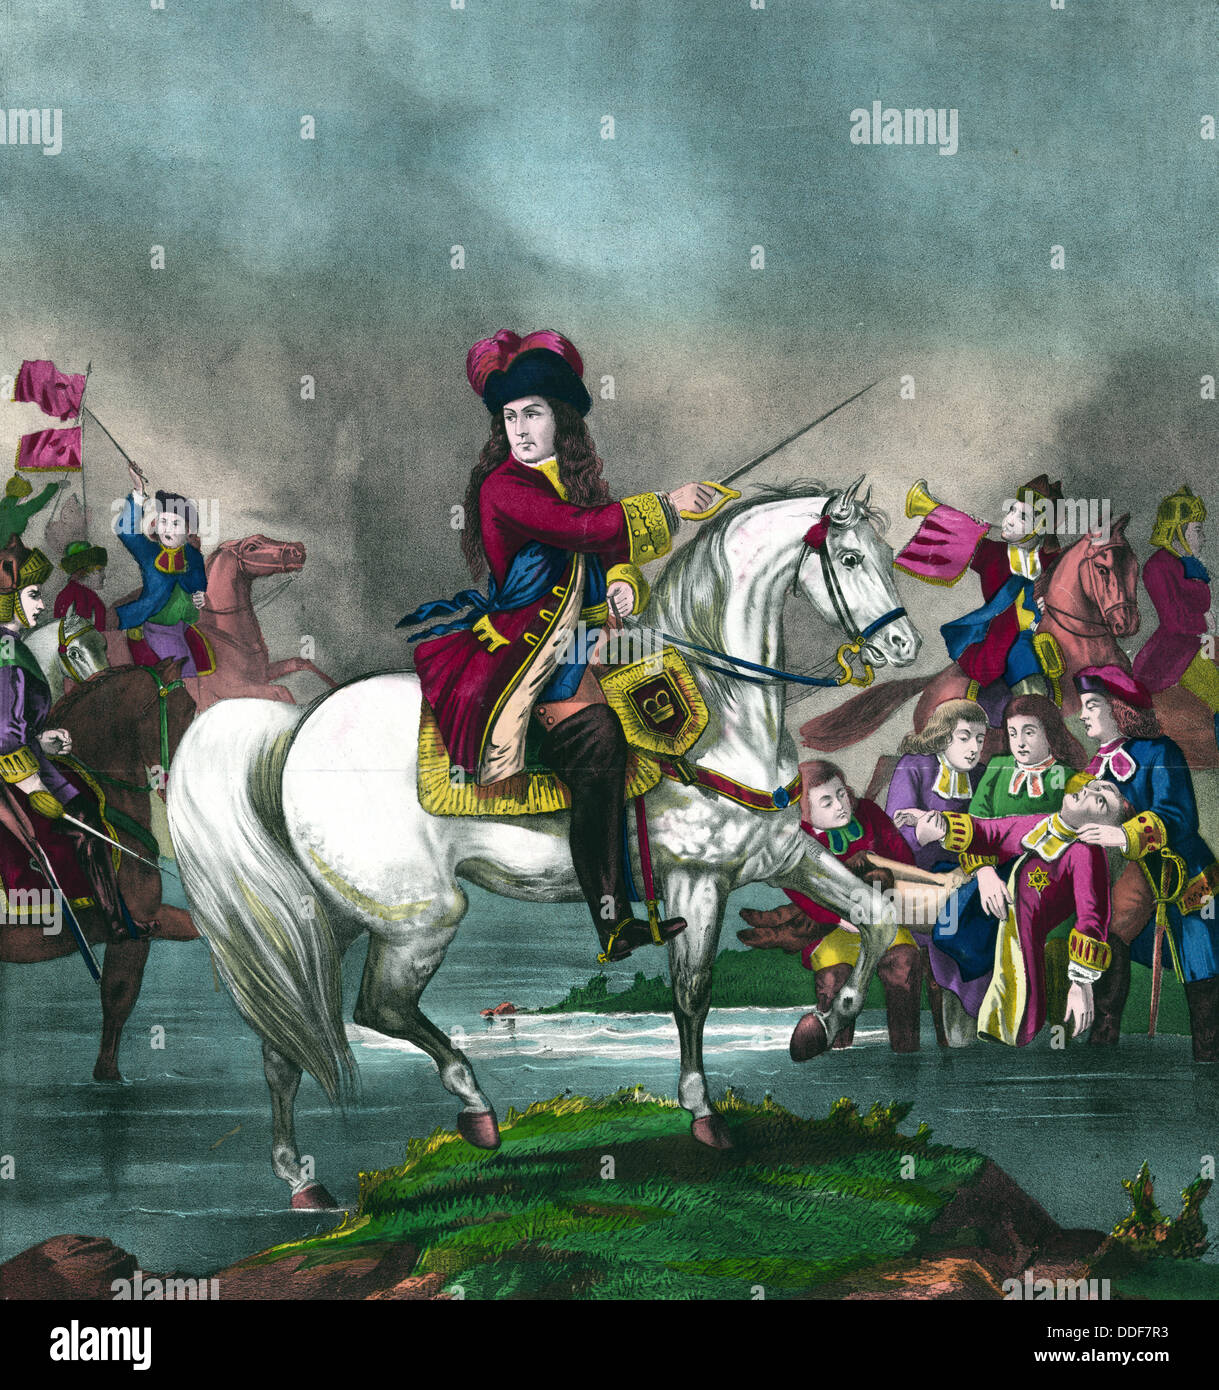 King William III at the battle of the Boyne - Stock Image